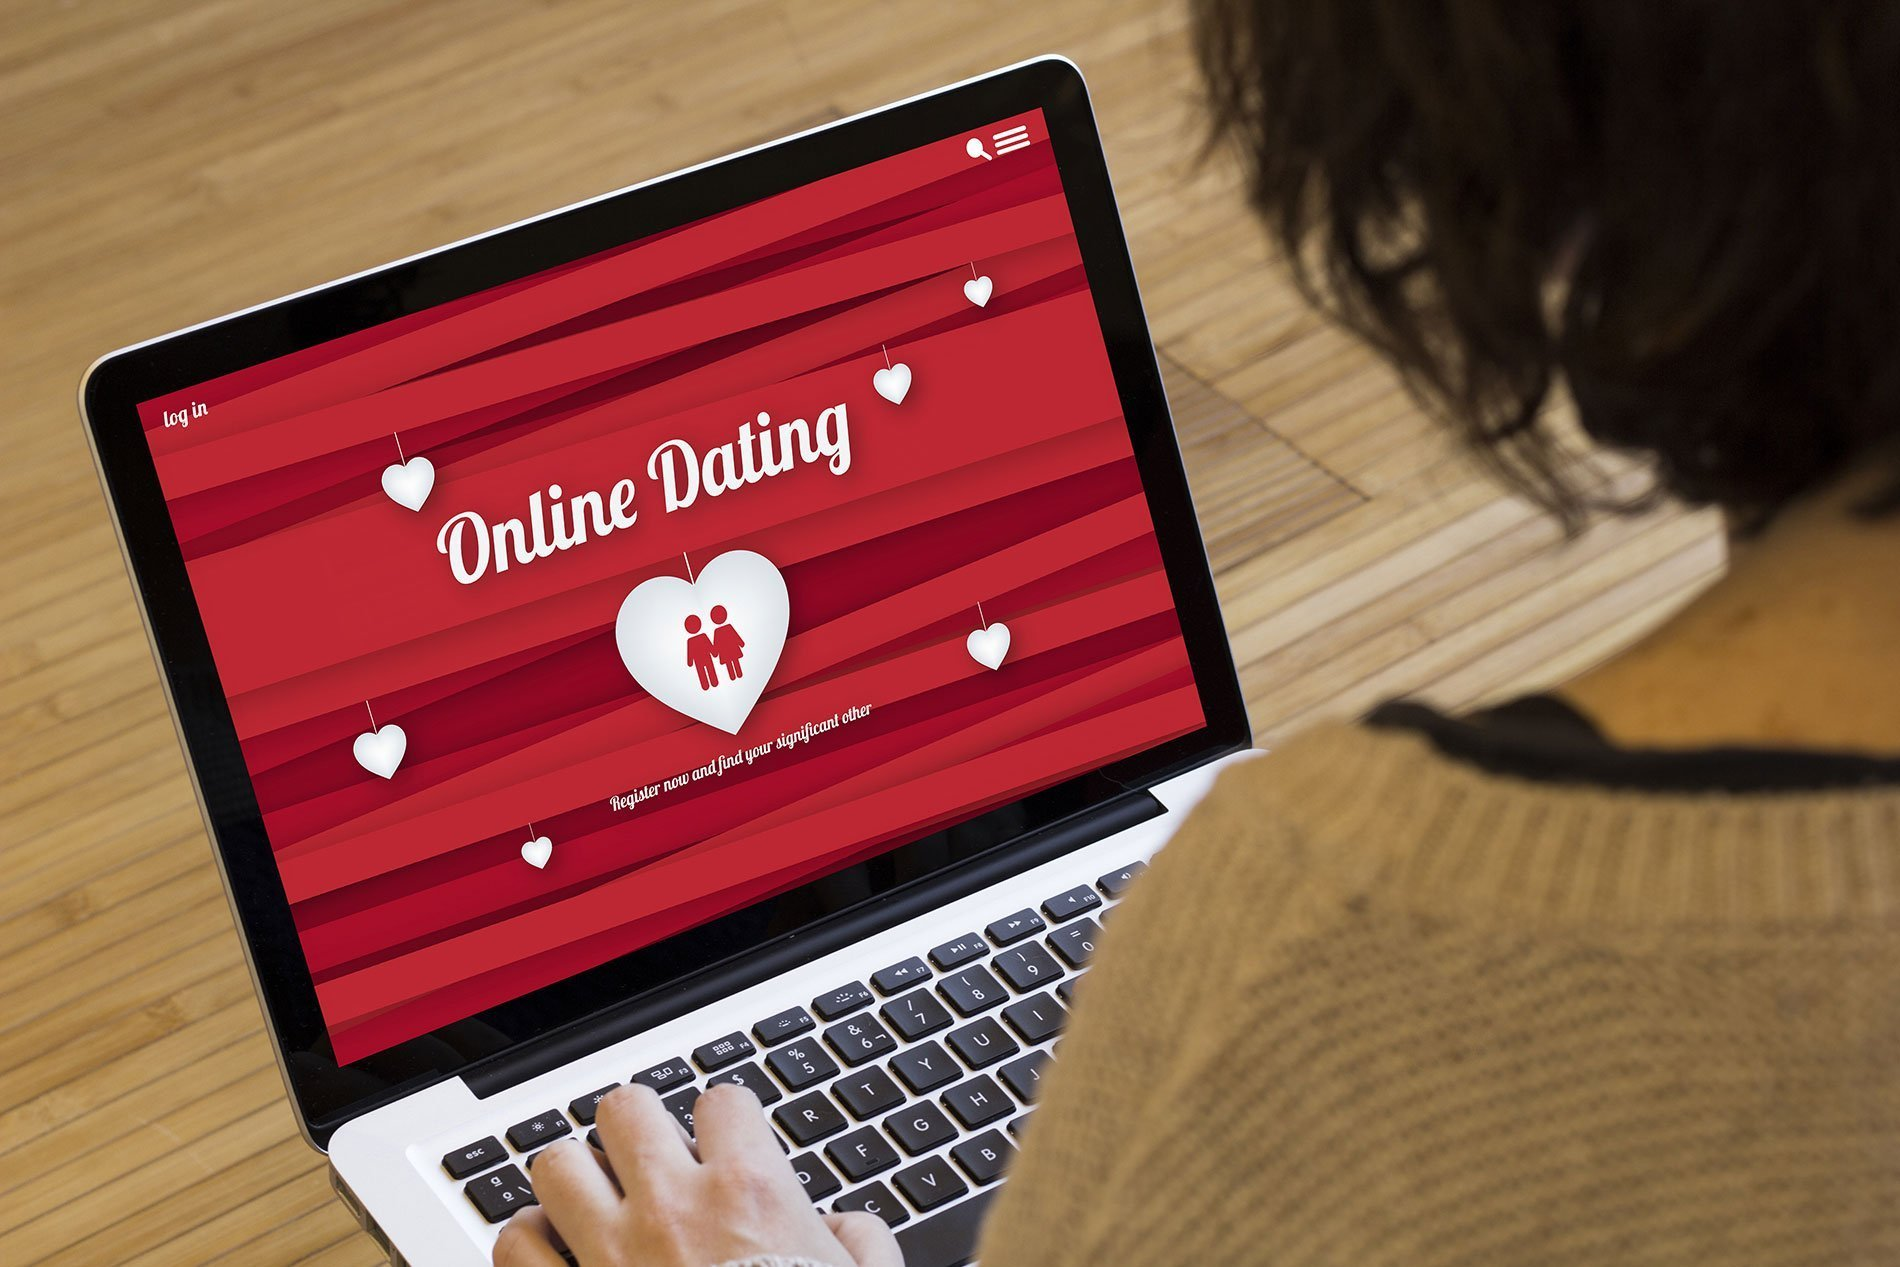 laptop with online dating site up in browser